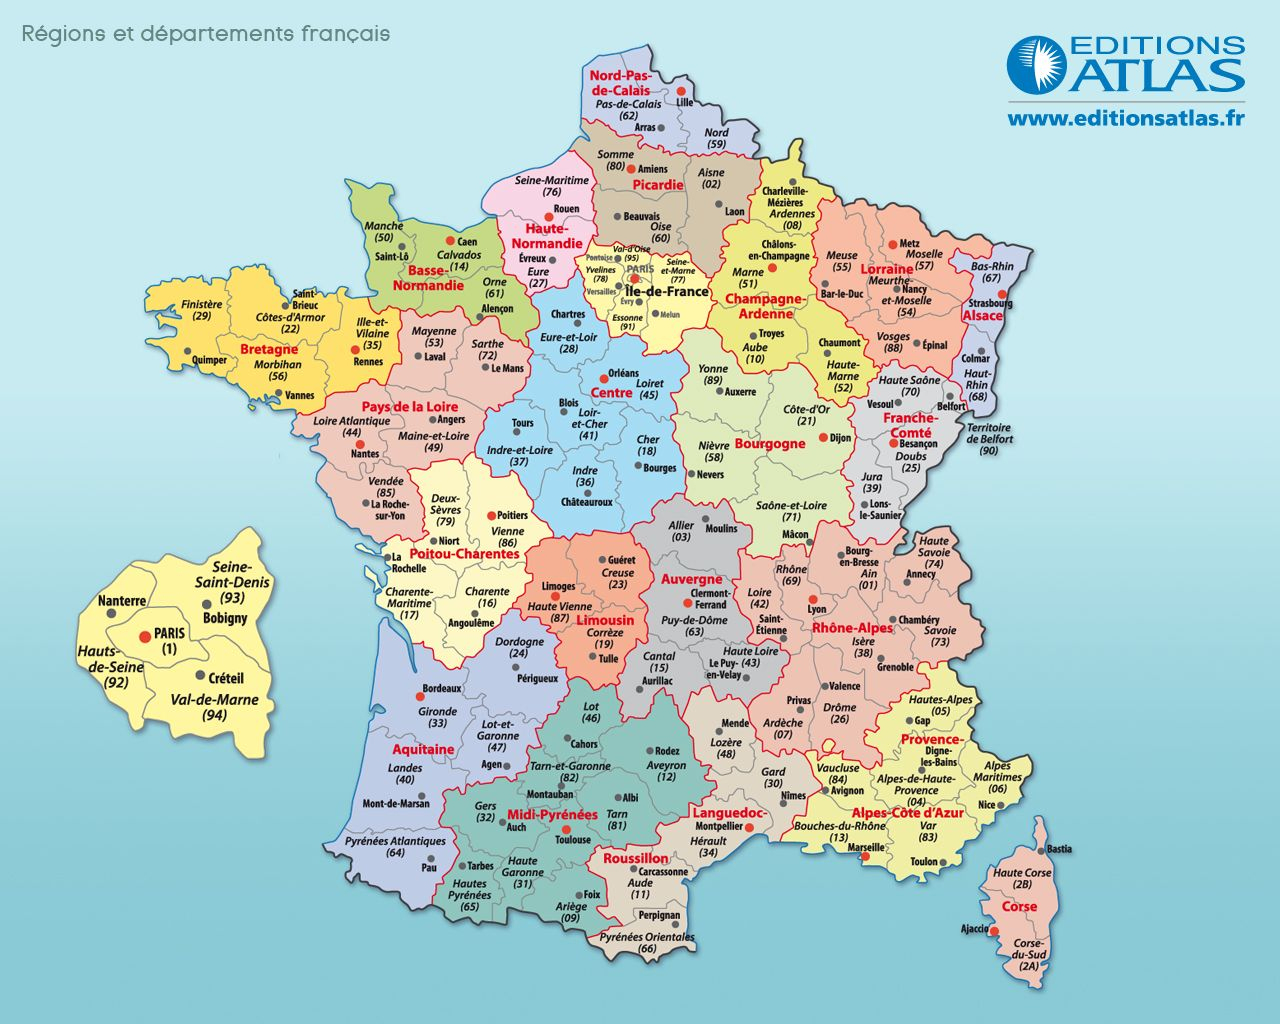 Carte De France | Carte De France Région, Carte De France concernant Carte De La France Région